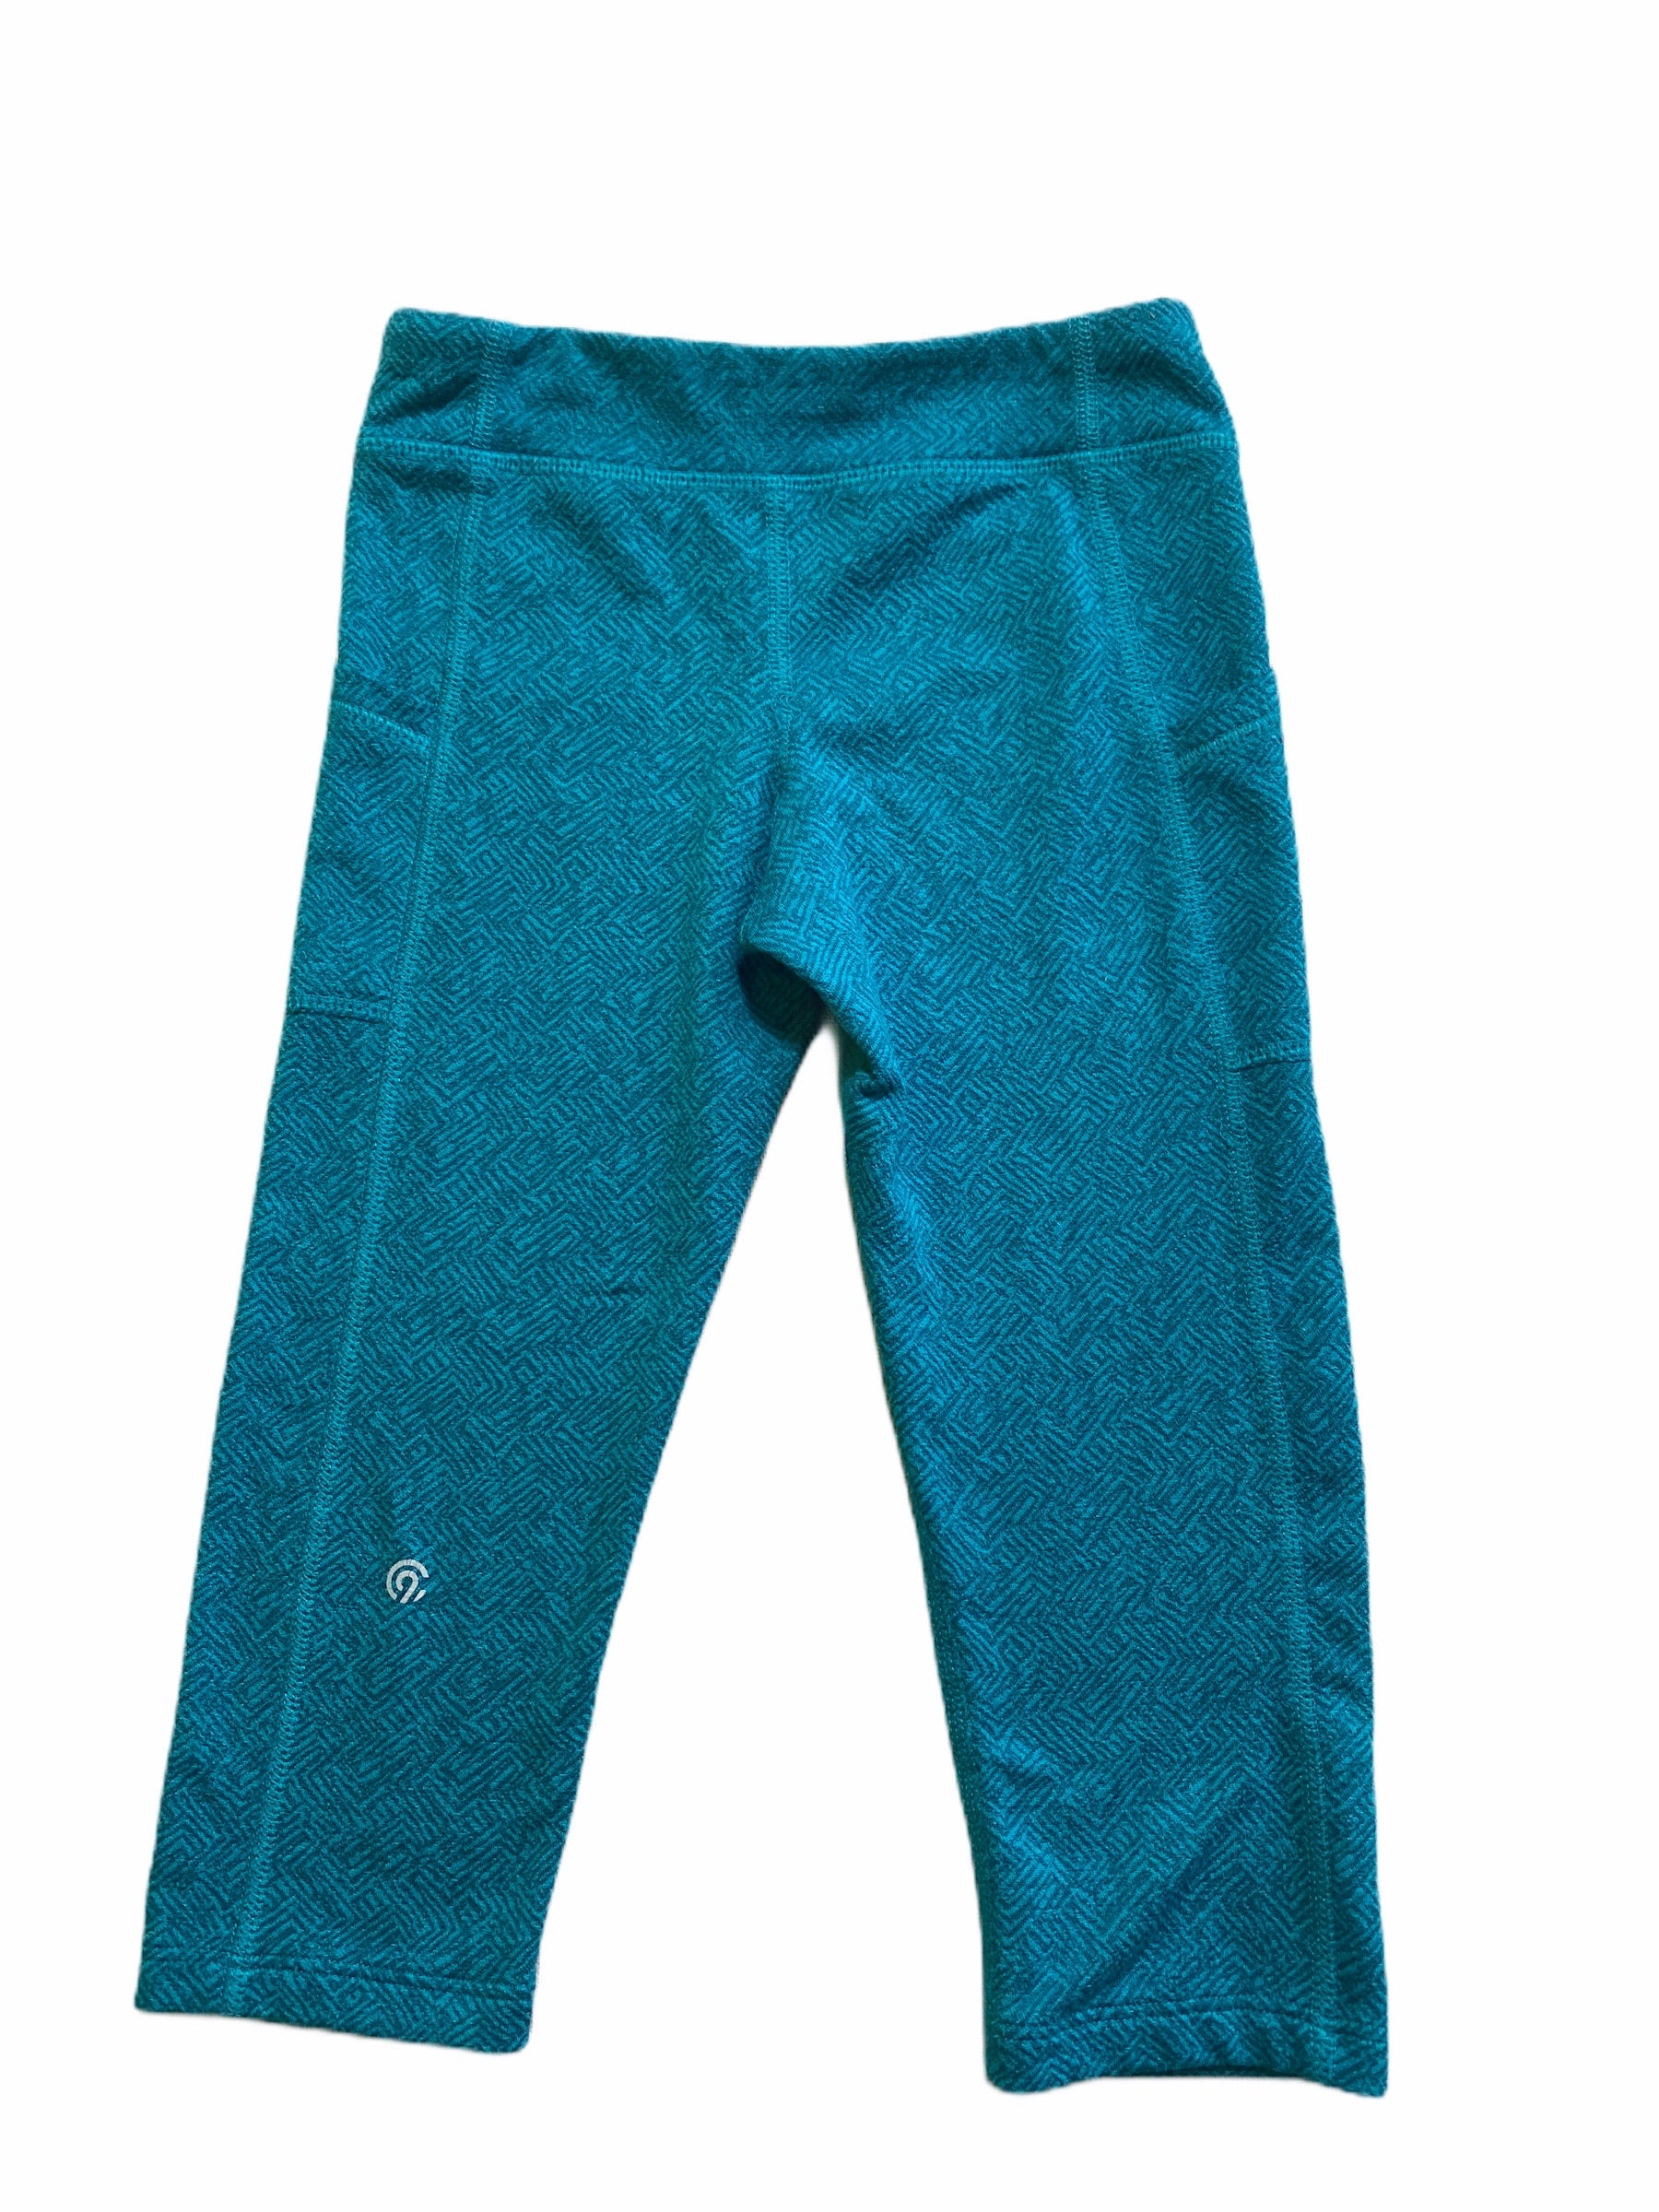 Champion Teal Athletic Capri (6/6X Girls)